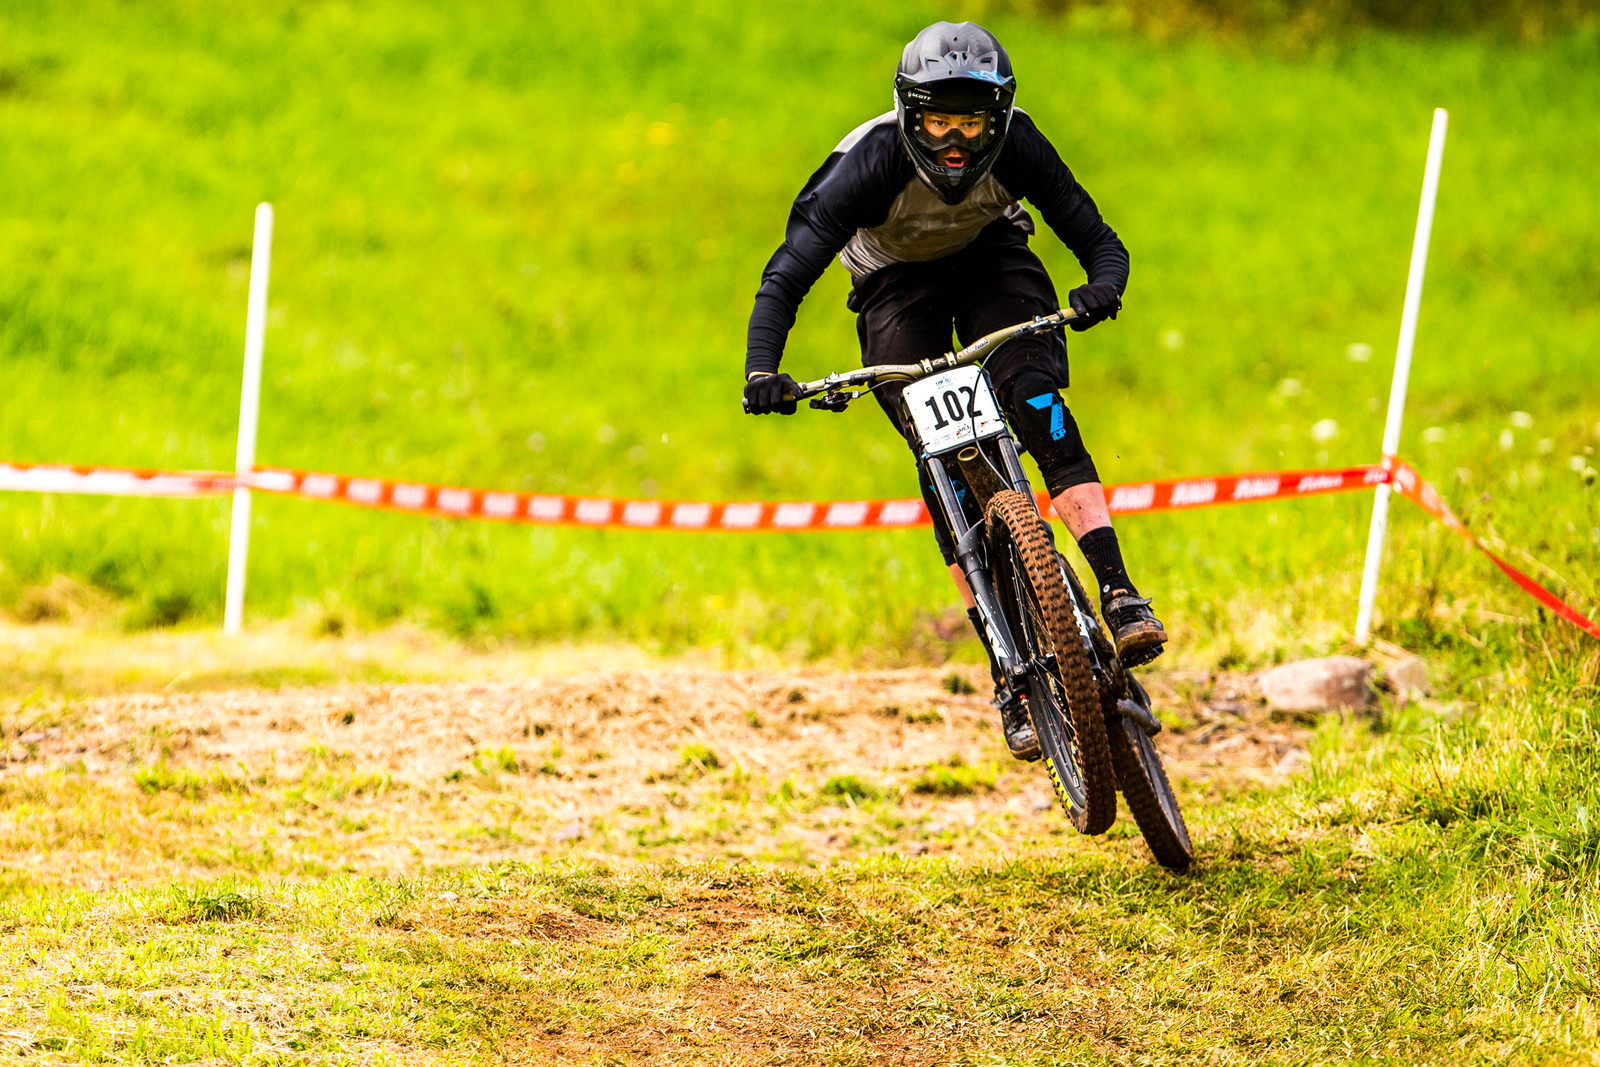 Trent Del Grippo - RACE DAY GALLERY - 2017 Pro GRT, Windham, NY - Mountain Biking Pictures - Vital MTB